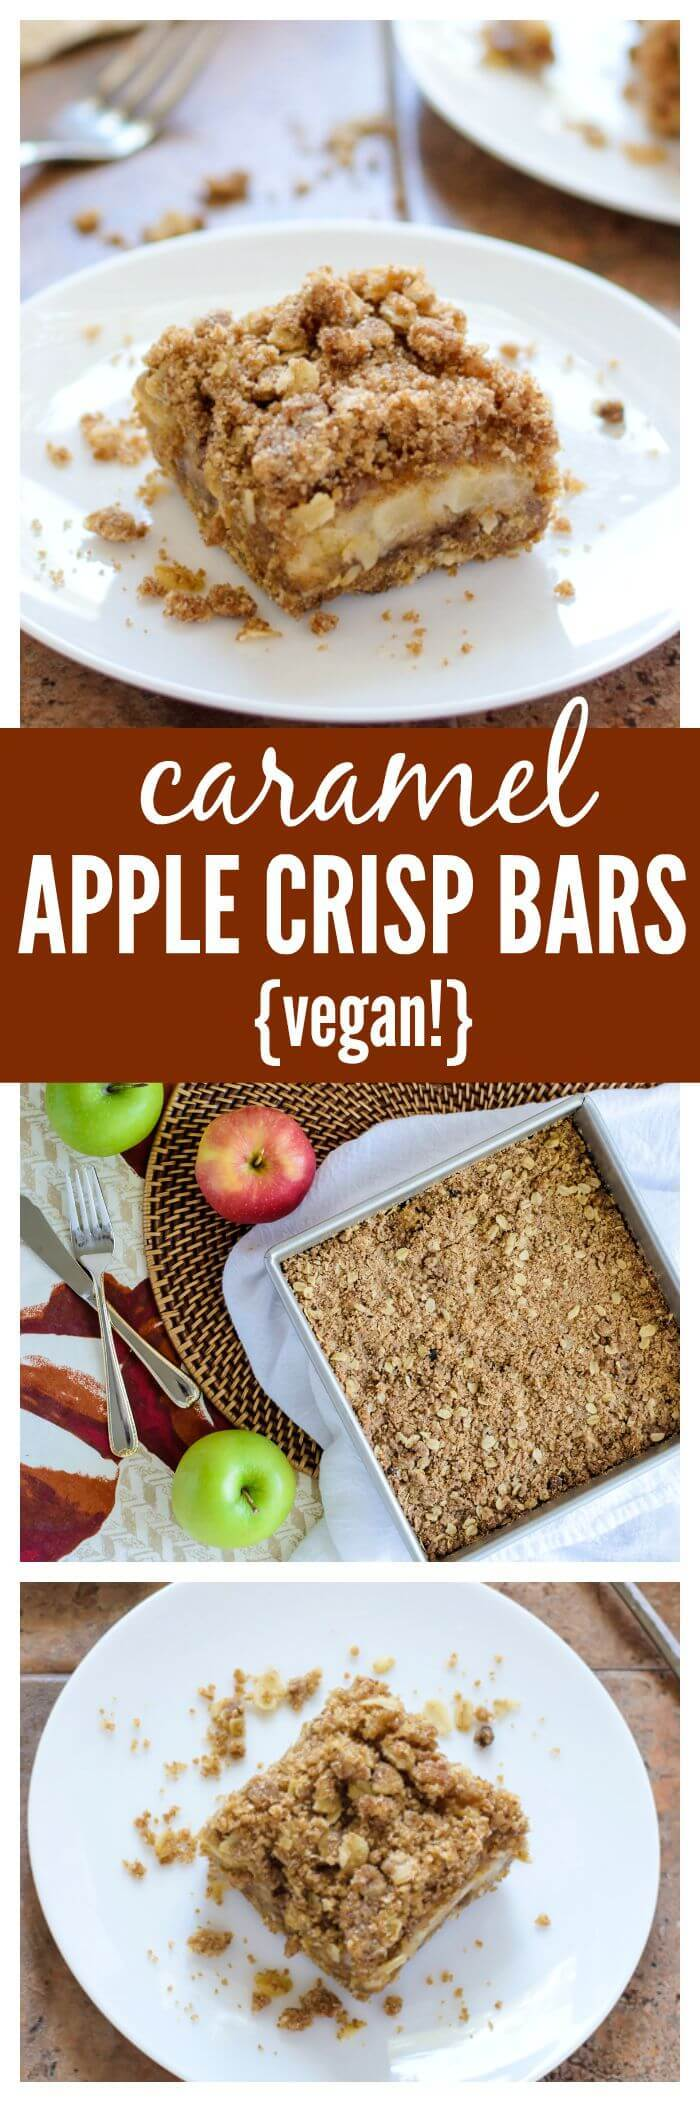 Caramel Apple Crisp Bars. Ooey gooey caramel apple bars with cinnamon streusel topping and crust. A healthy vegan recipe that tastes completely decadent! #apple #vegan